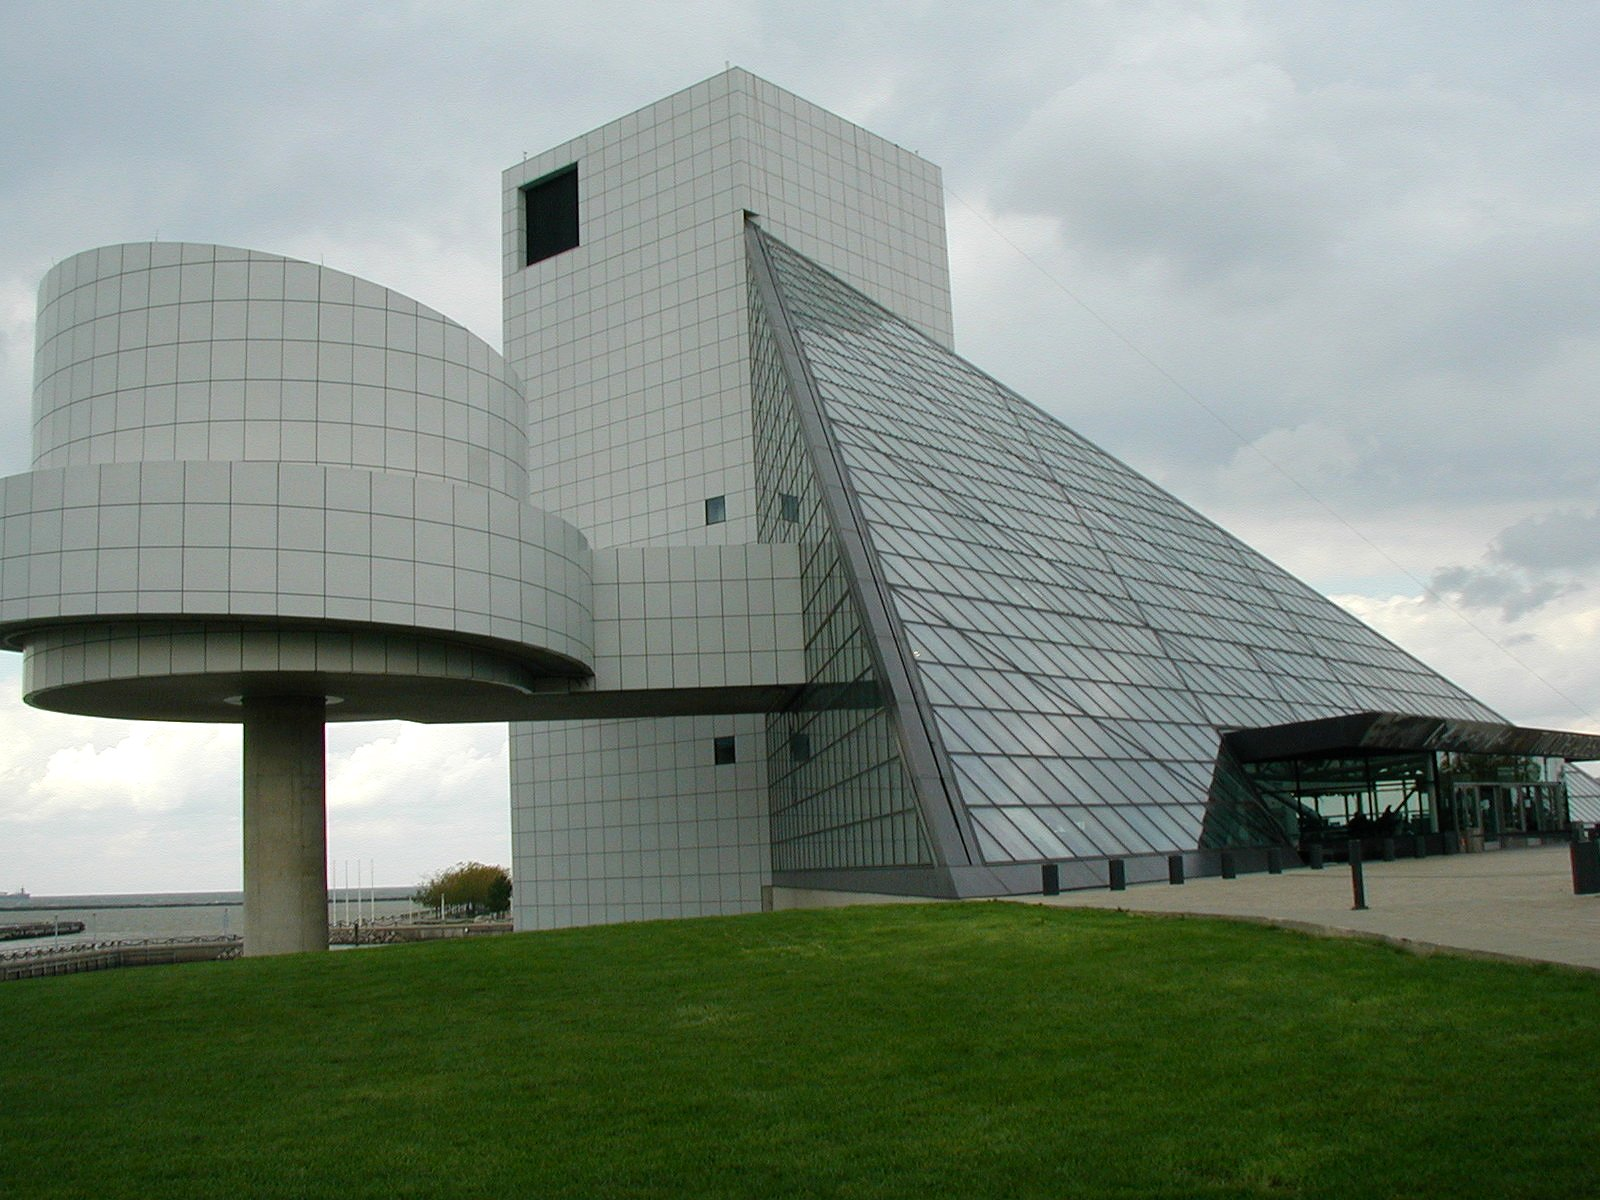 File:Rock and Roll Hall of Fame 2003-2.jpg - Wikimedia Commons